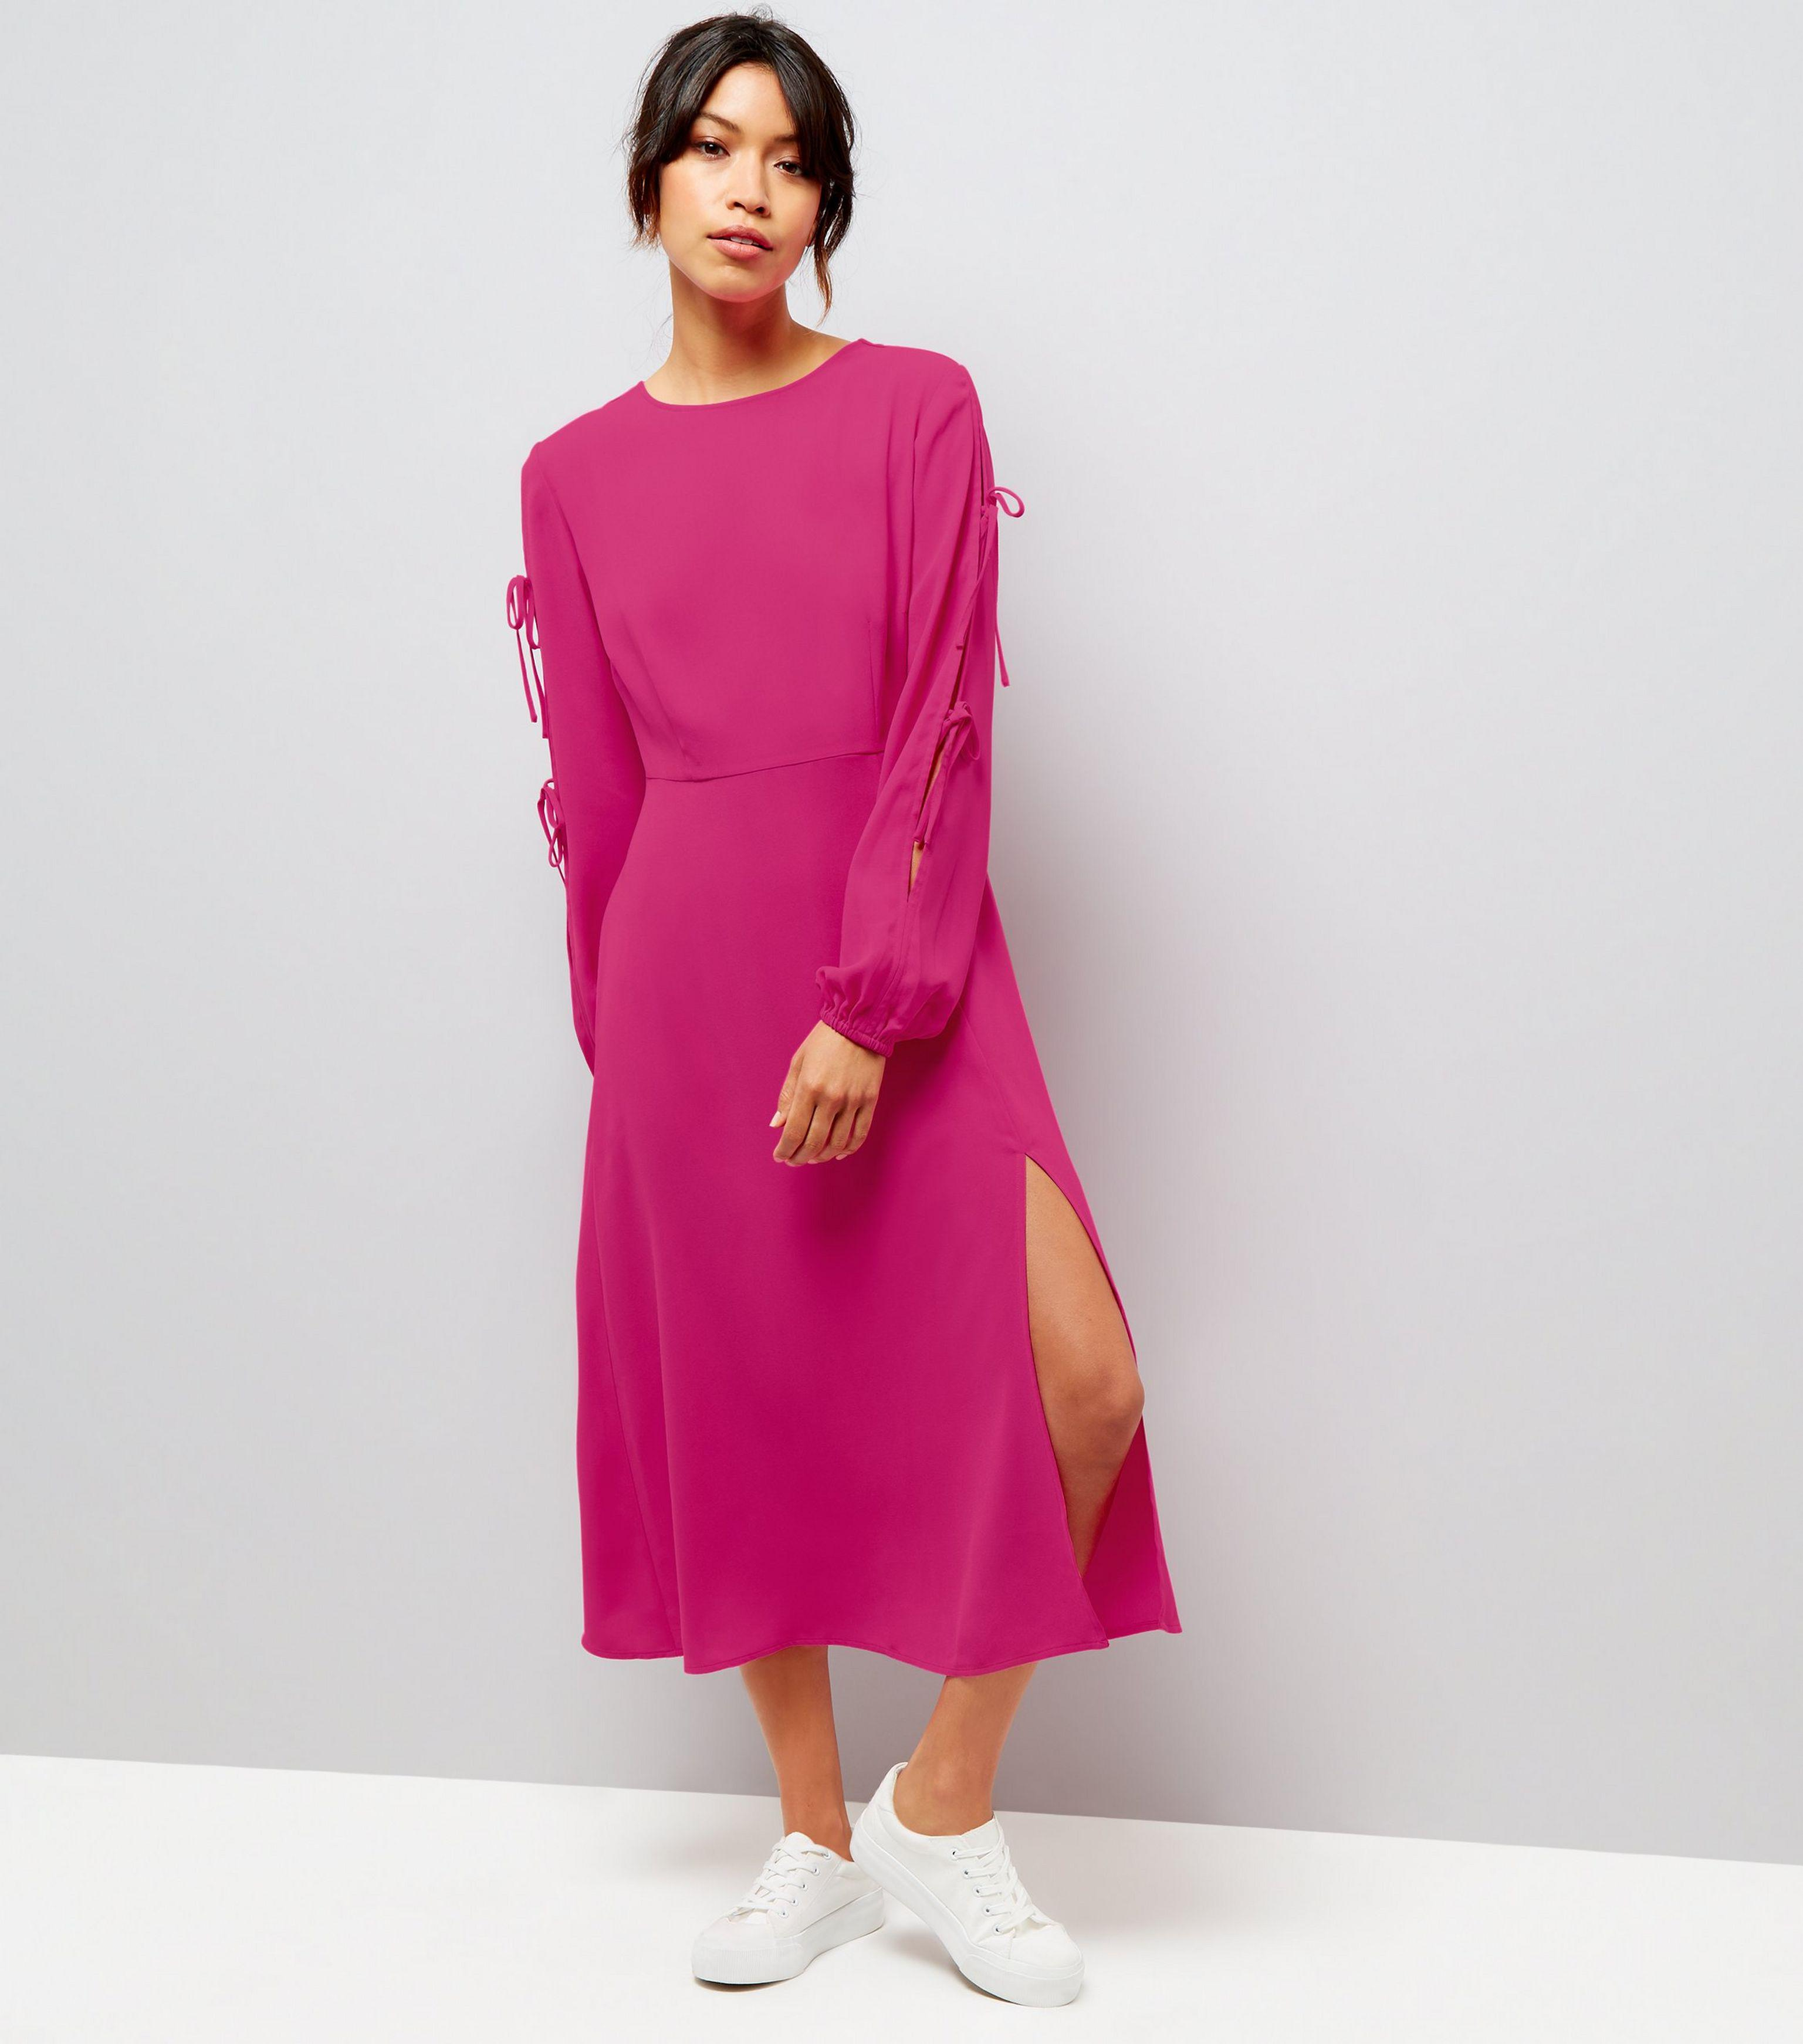 7449193145c4 New Look Bright Pink Tie Sleeve Split Side Midi Dress in Pink - Lyst